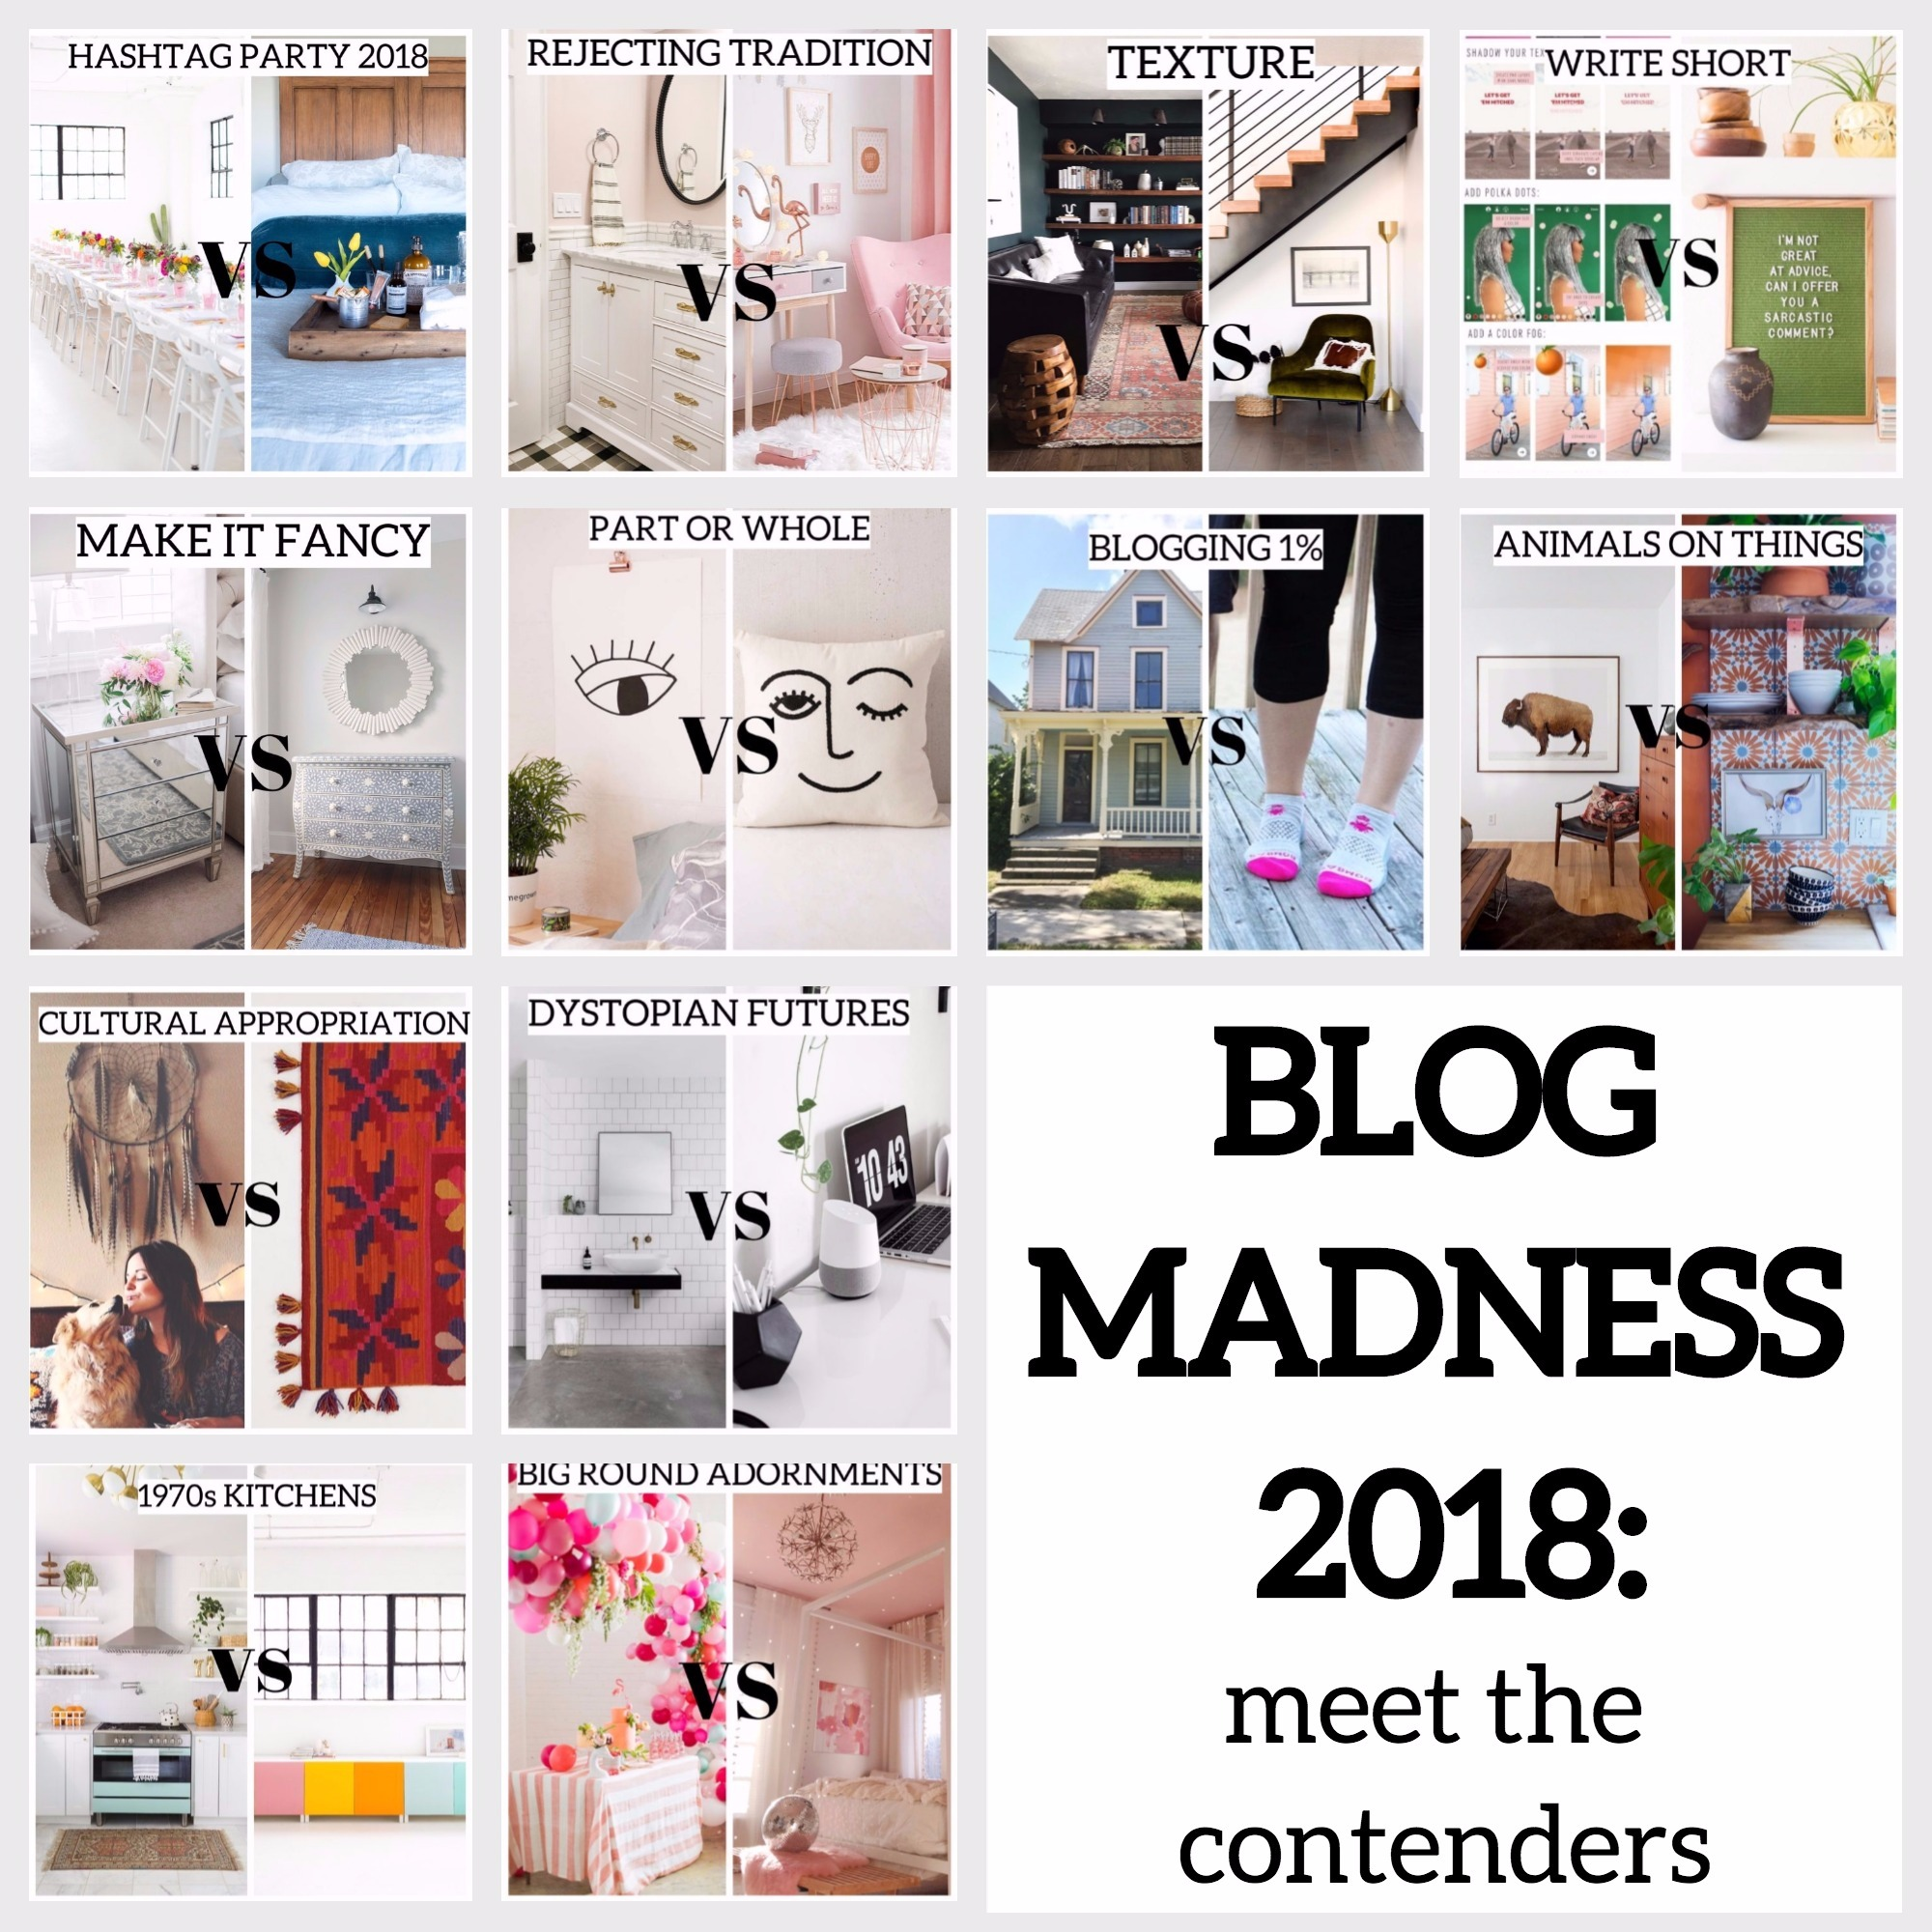 blog madness intro -- Plaster & Disaster